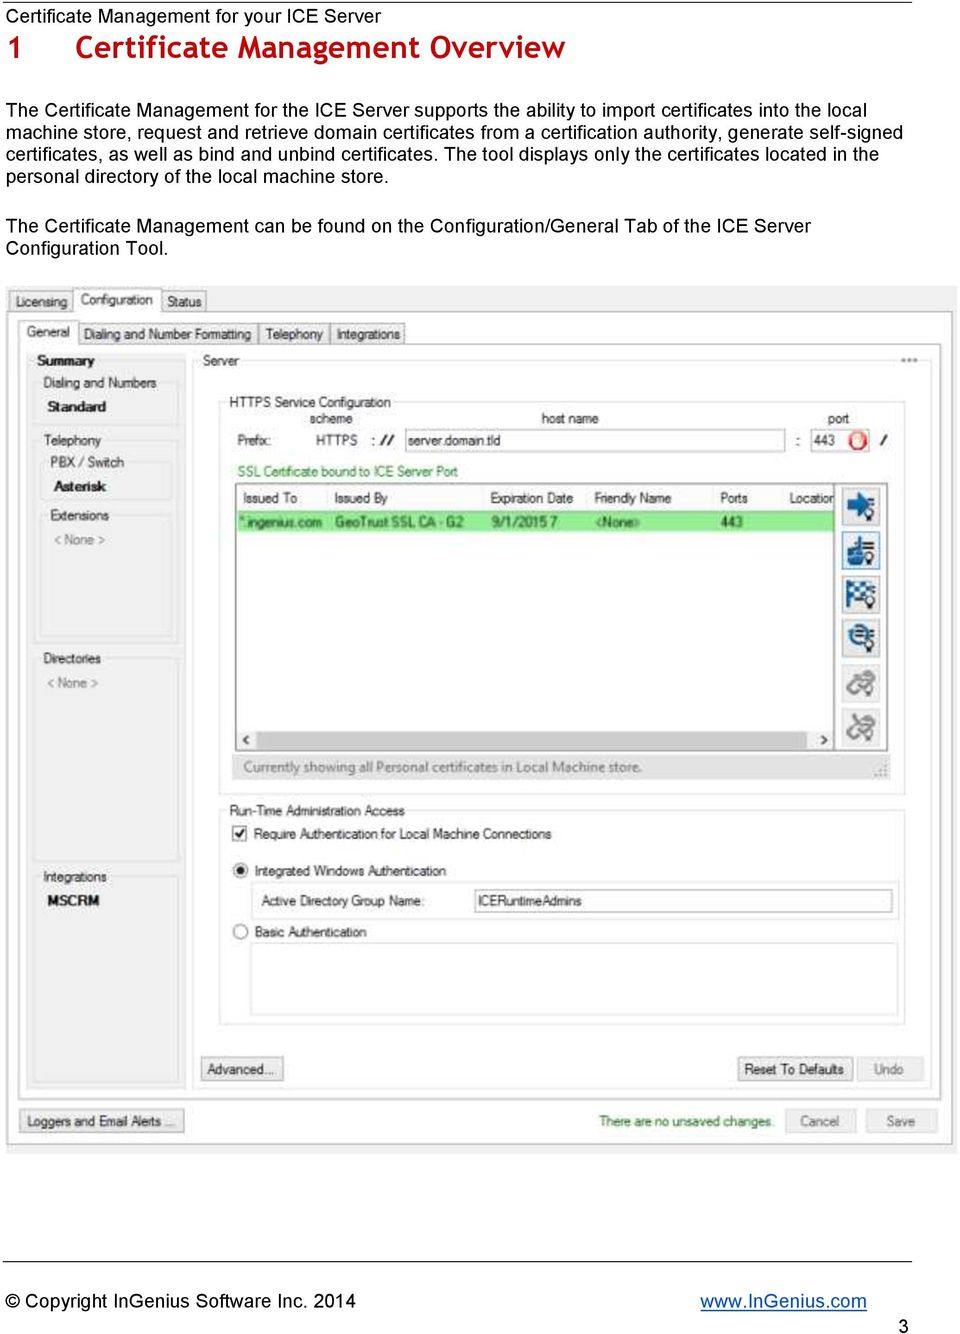 Certificate Management For Your Ice Server Pdf